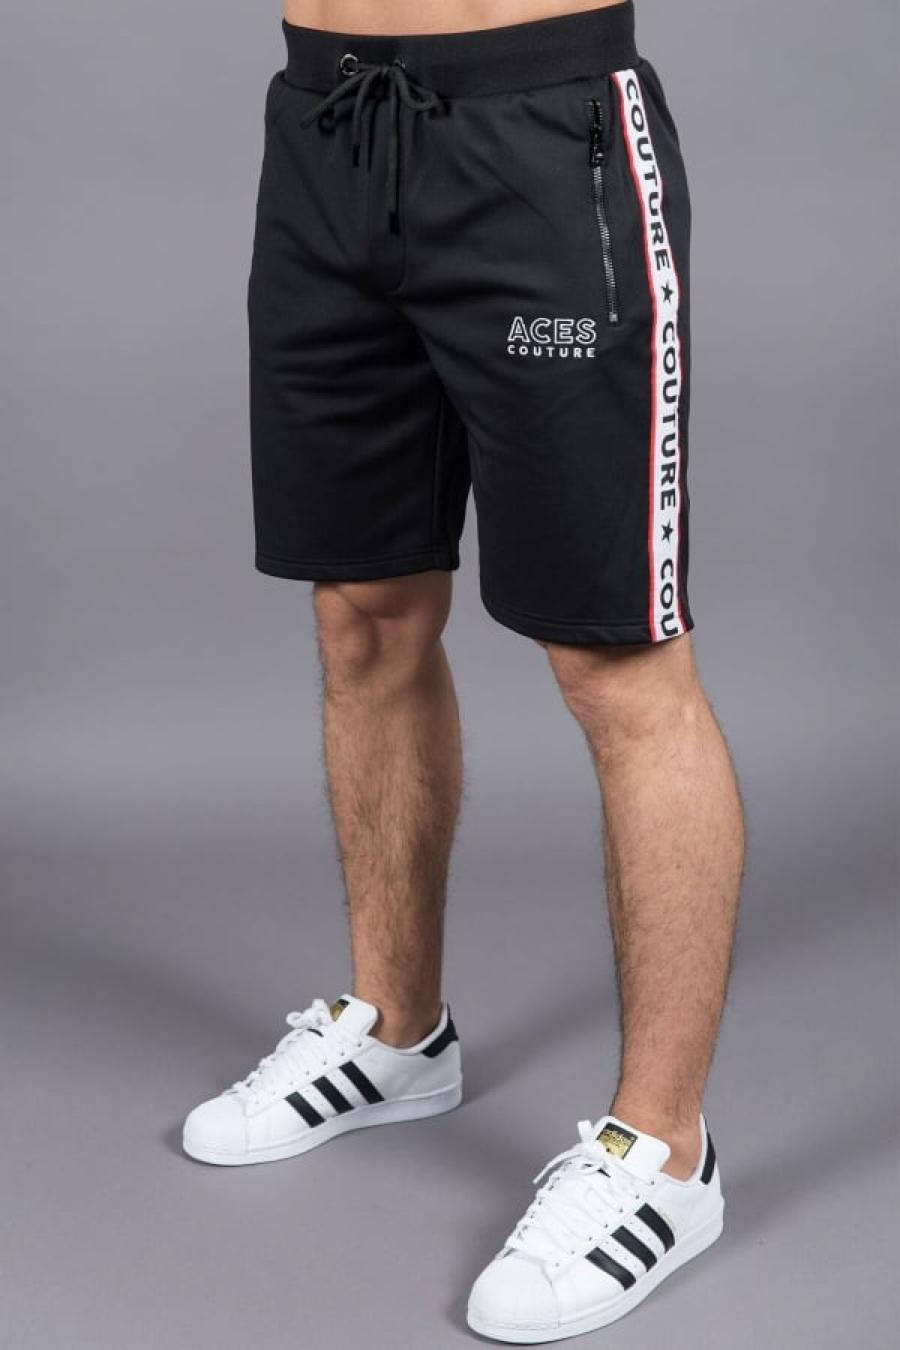 Aces Couture Tape Poly Shorts - Black